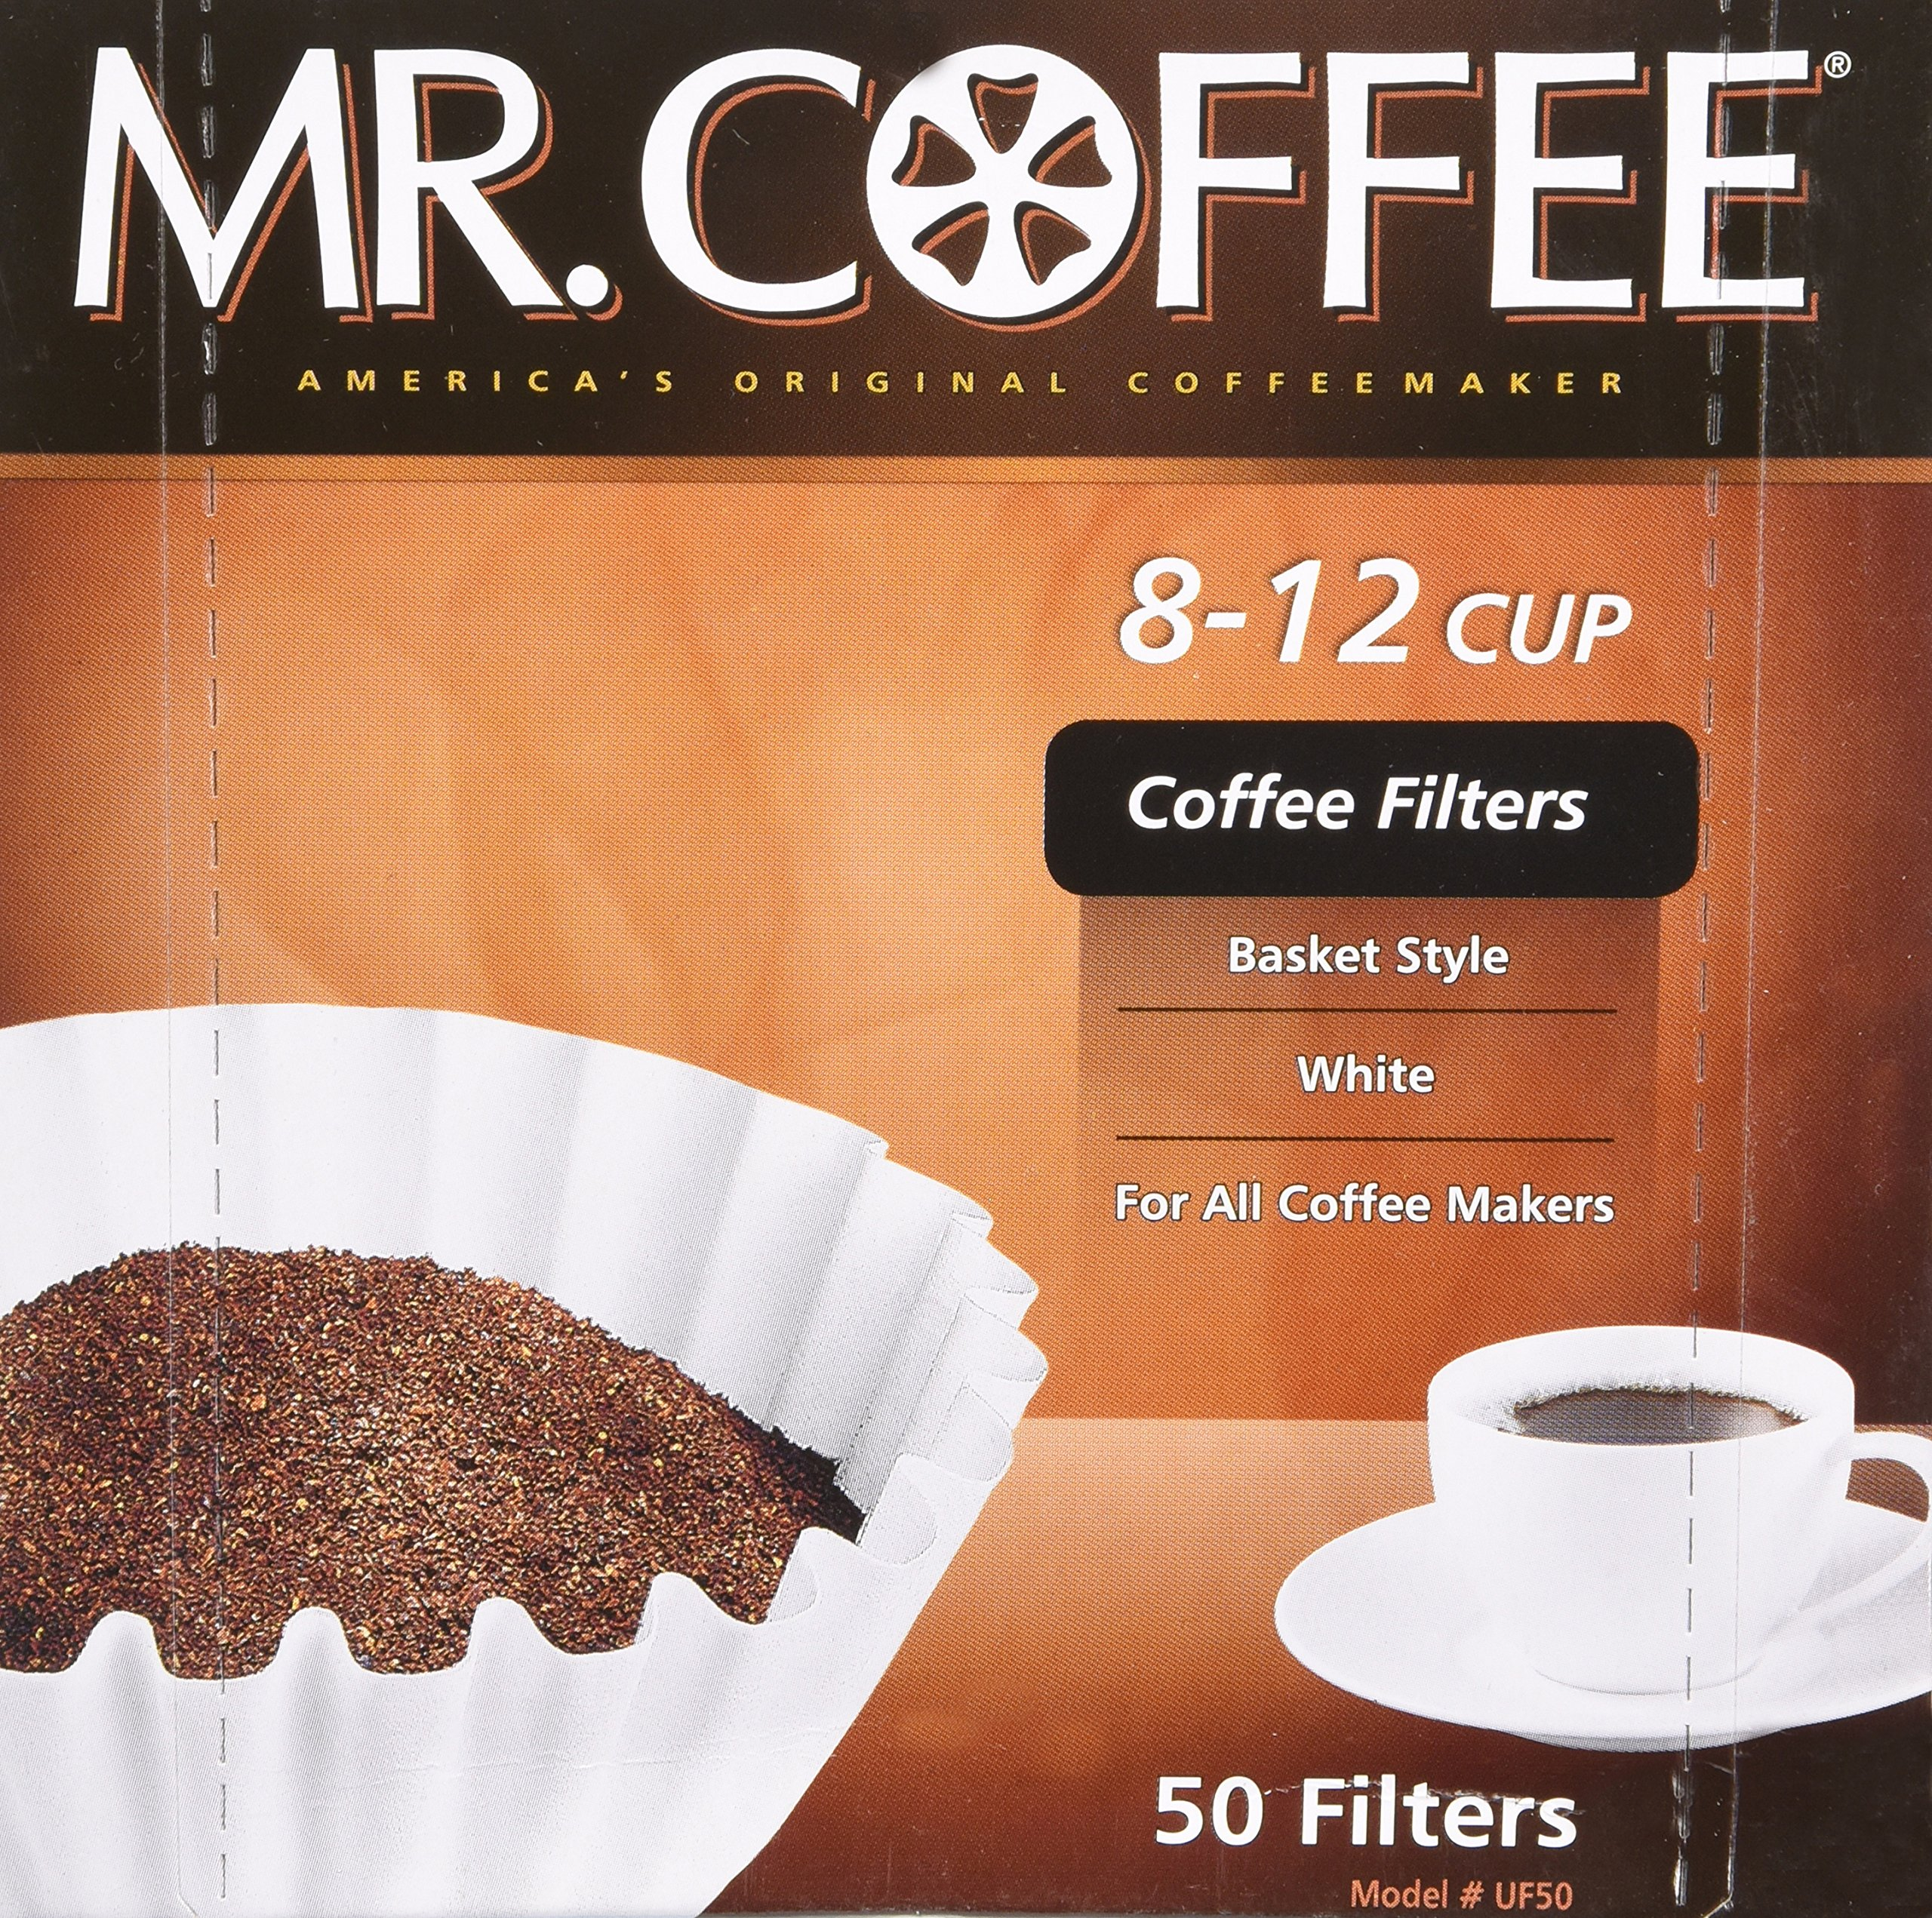 Mr. Coffee Coffee Basket Filters 8 12 Cup 50 Filters (1, 8-12 Cup)